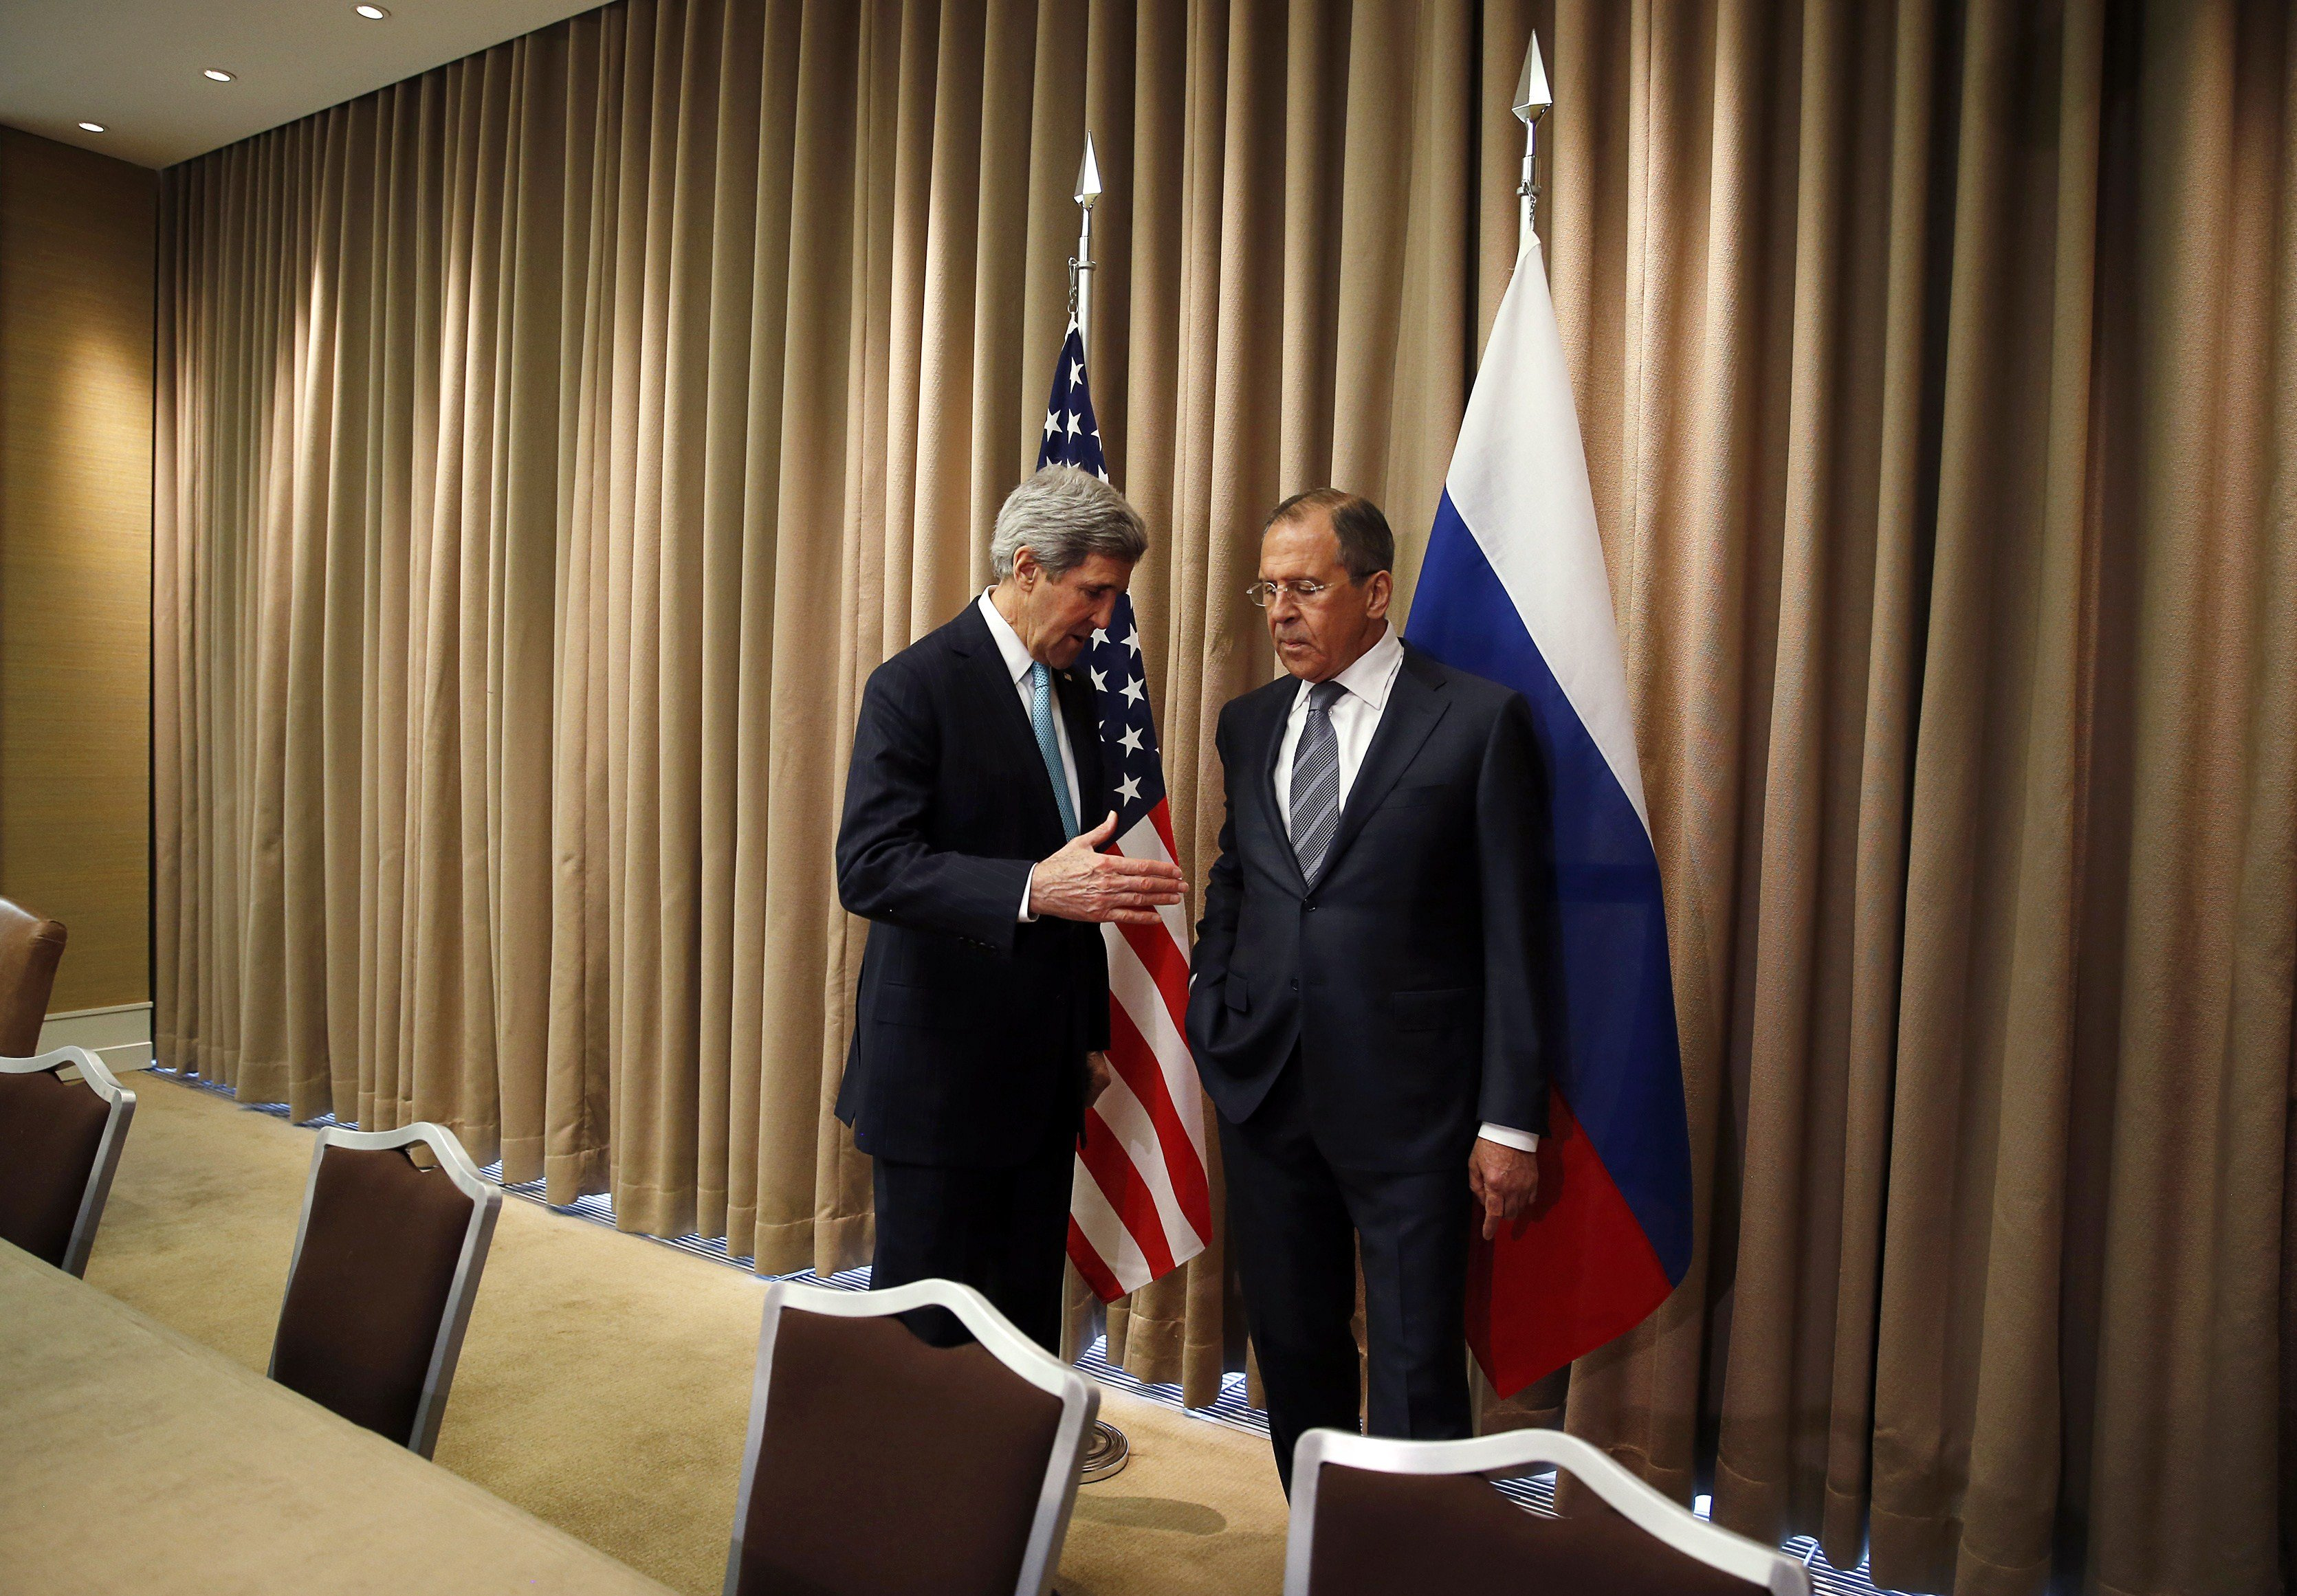 From left: U.S. Secretary of State John Kerry talks with Russian Foreign minister Sergei Lavrov at the start of a bilateral meeting to discuss the ongoing situation in Ukraine on April 17, 2014 in Geneva.